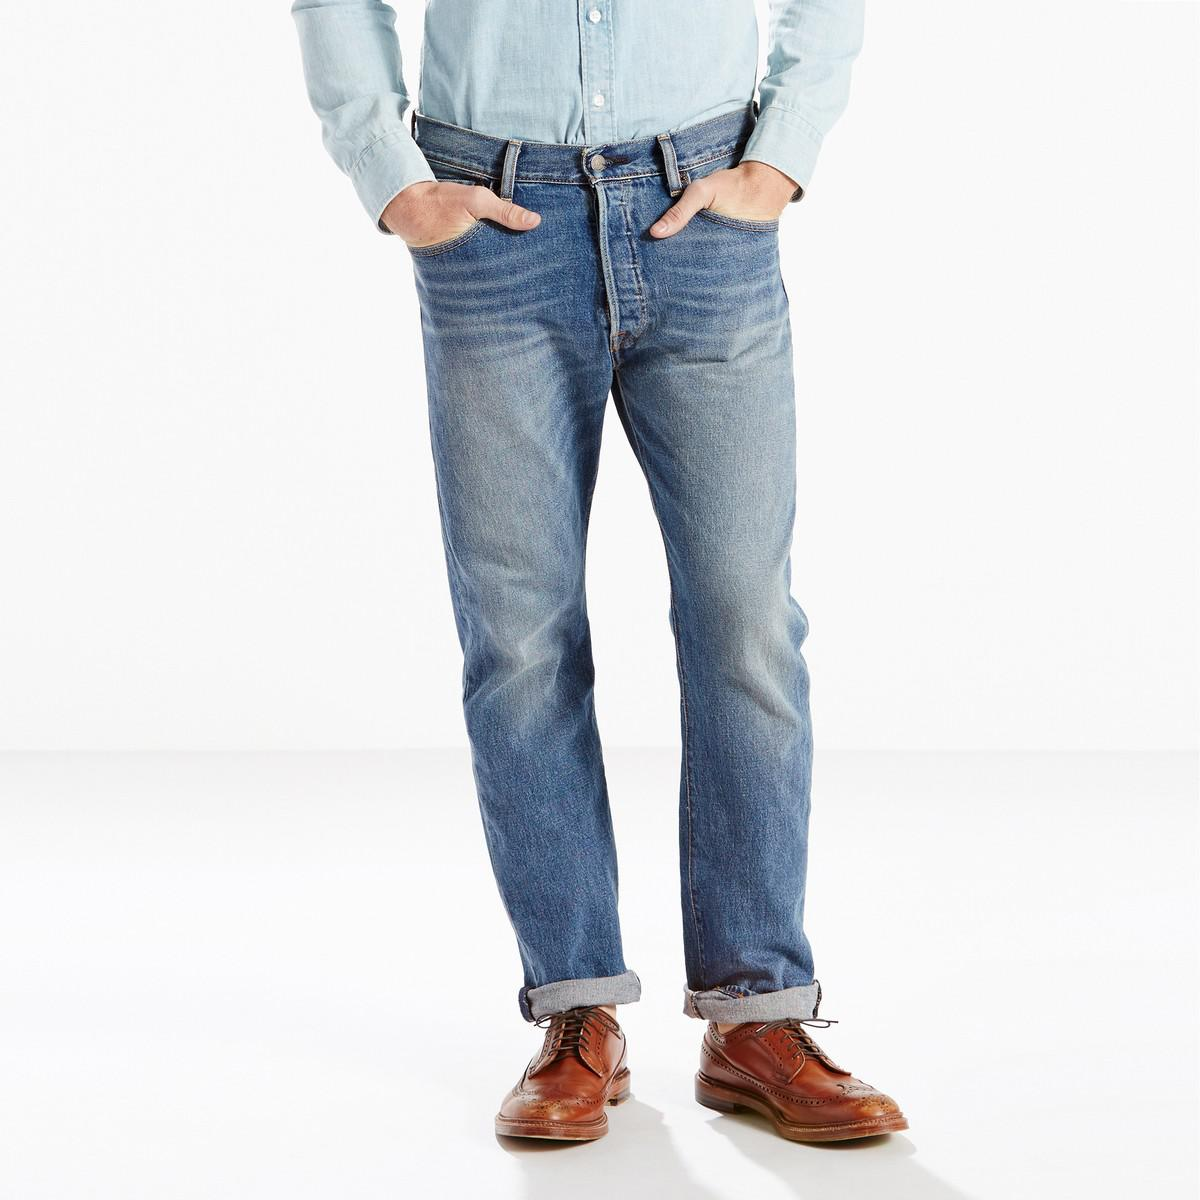 Wrangler big and tall jeans outsell all other brands which is why we carry so many. Full Blue is an excellent value with a good fit. Grand River is also an excellent fit particularly in the very large sizes of big & tall jeans above waist